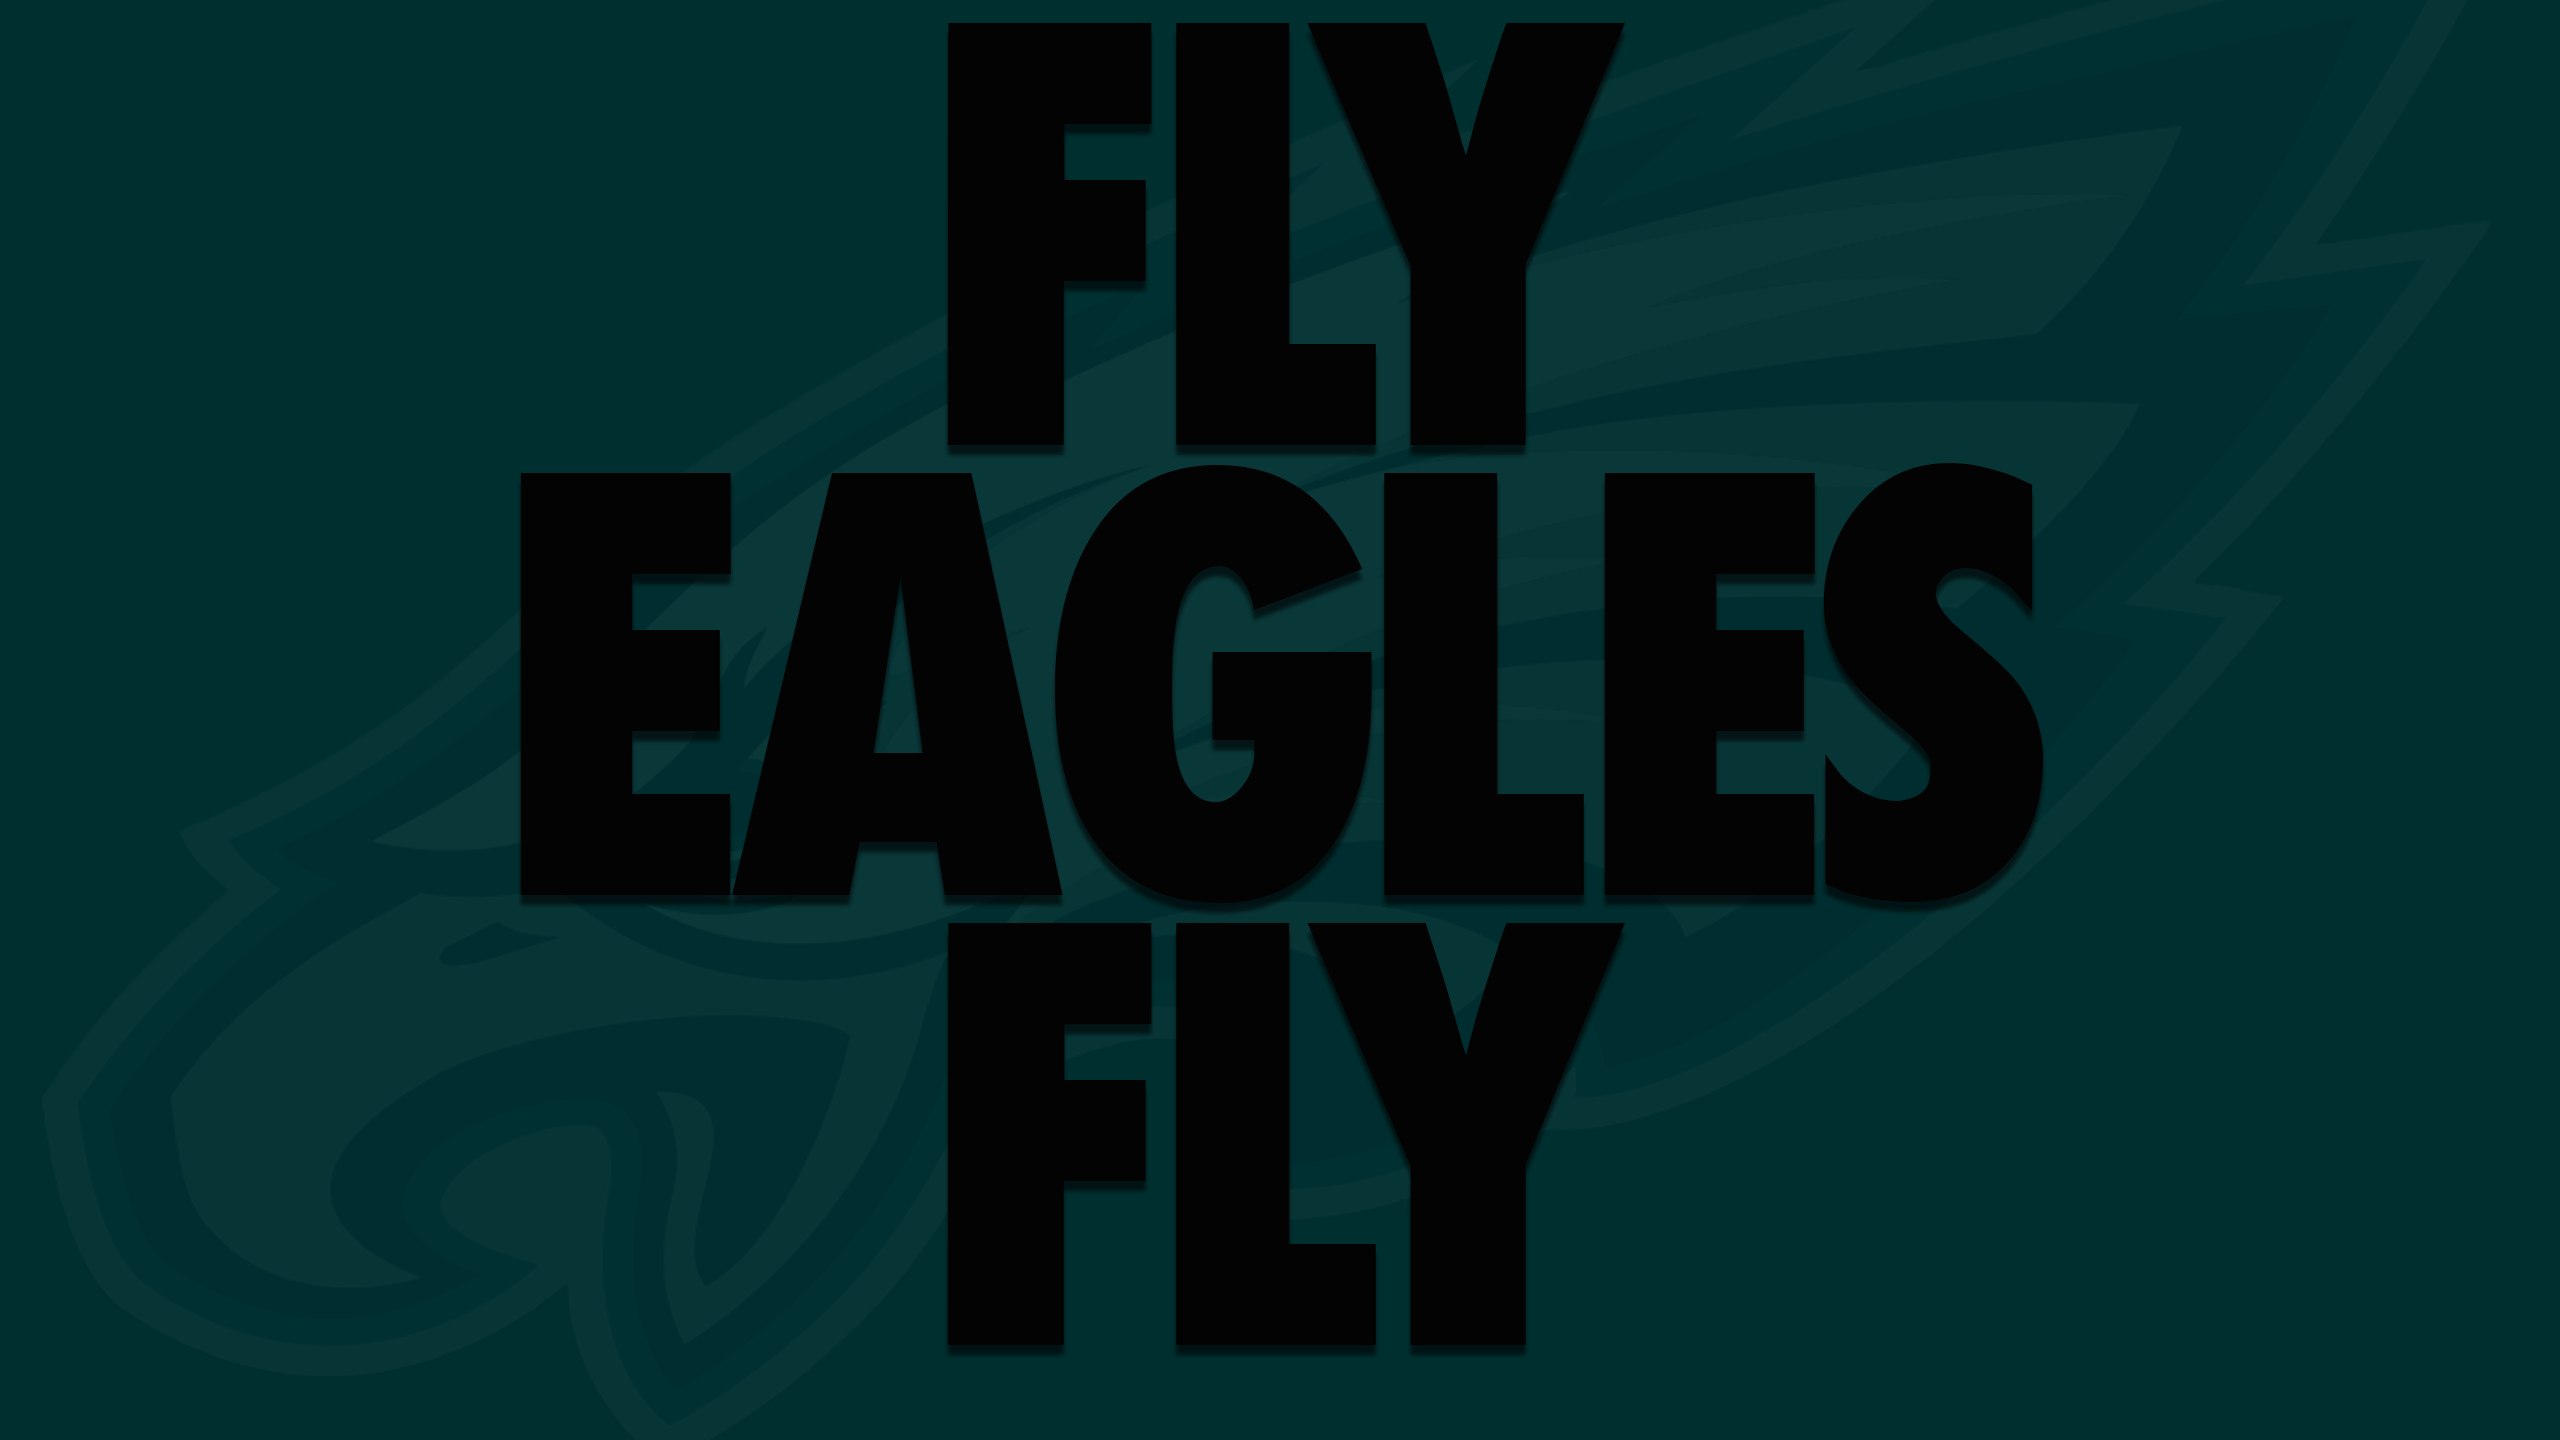 More Eagles Nike Wallpapers : eagles